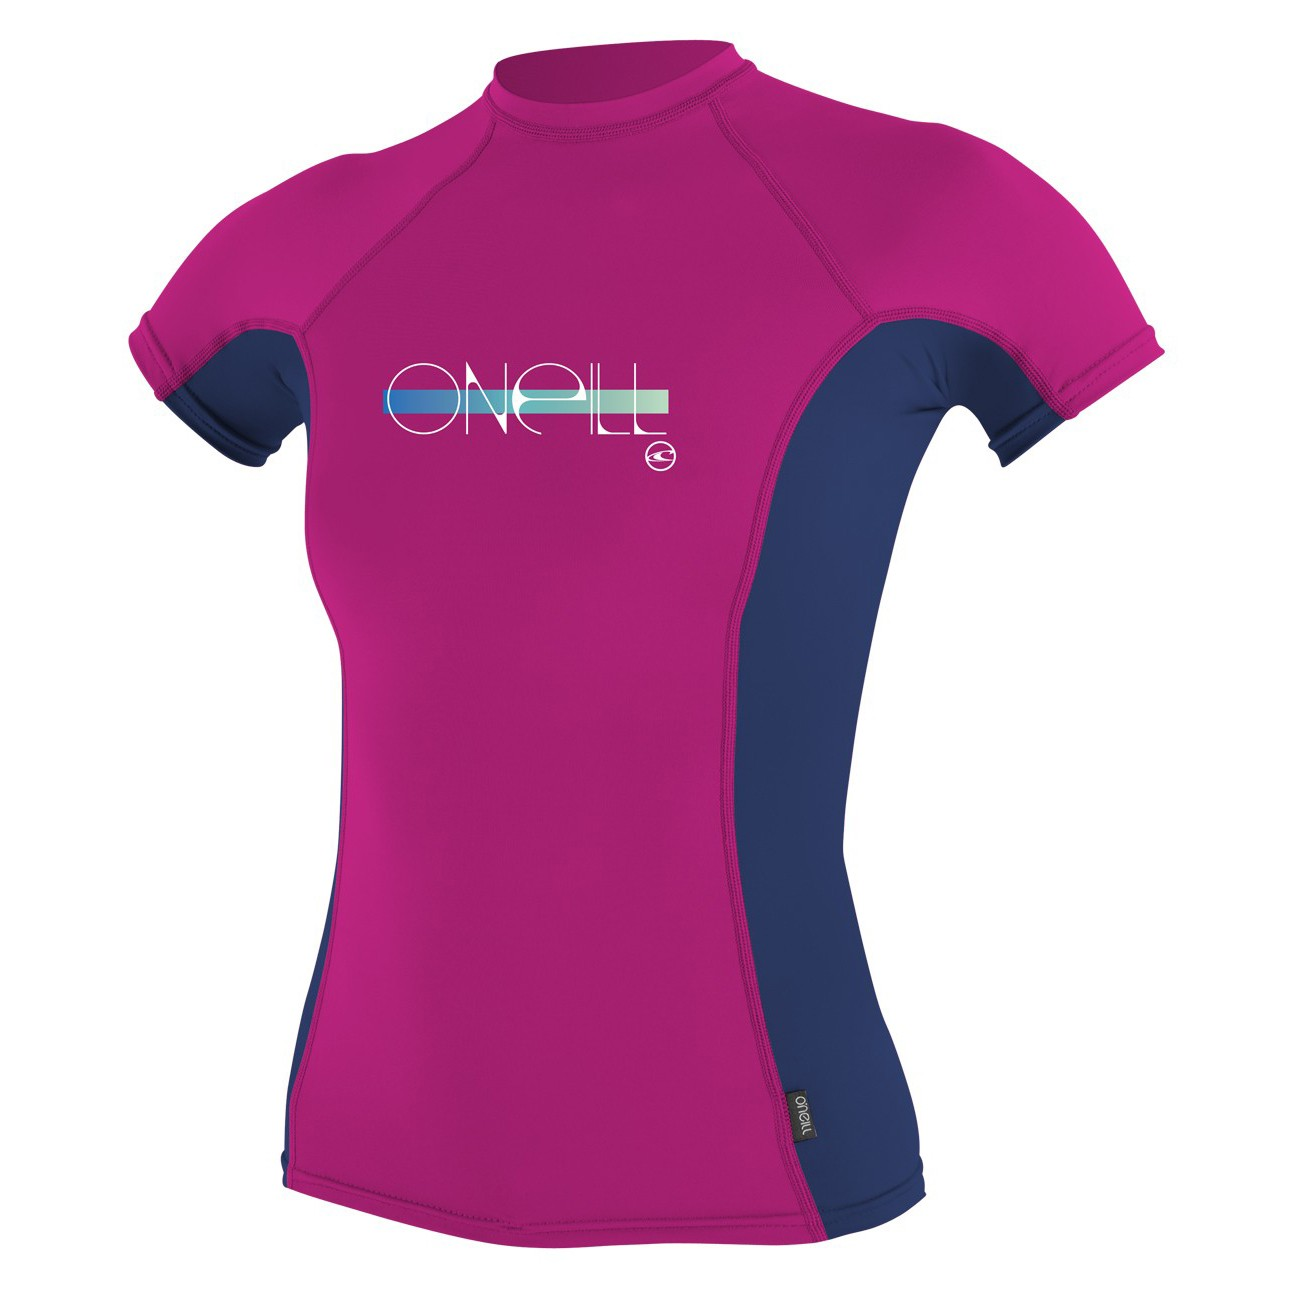 O'Neill Basic Skins +50 UV Short Sleeved Rashguard (Girl's)